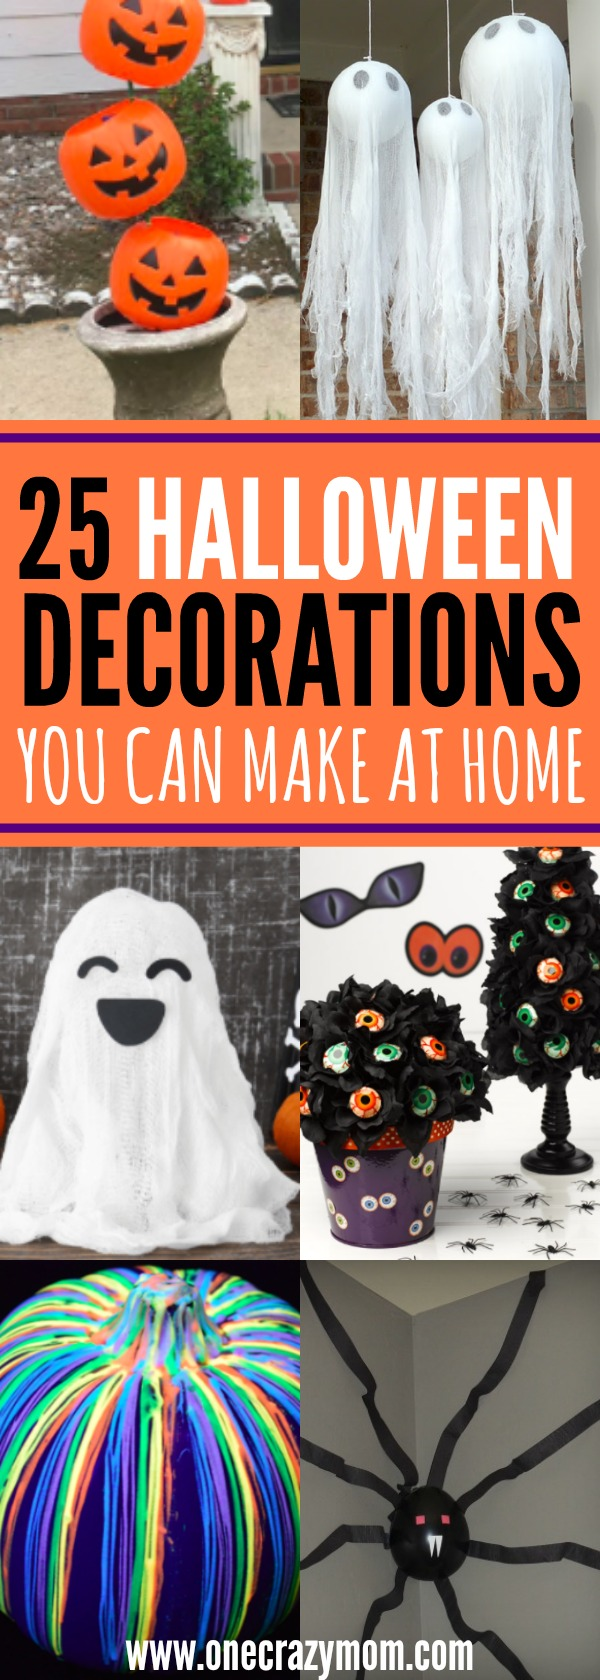 Halloween decorations that you can make at home for Halloween decorations you can make at home